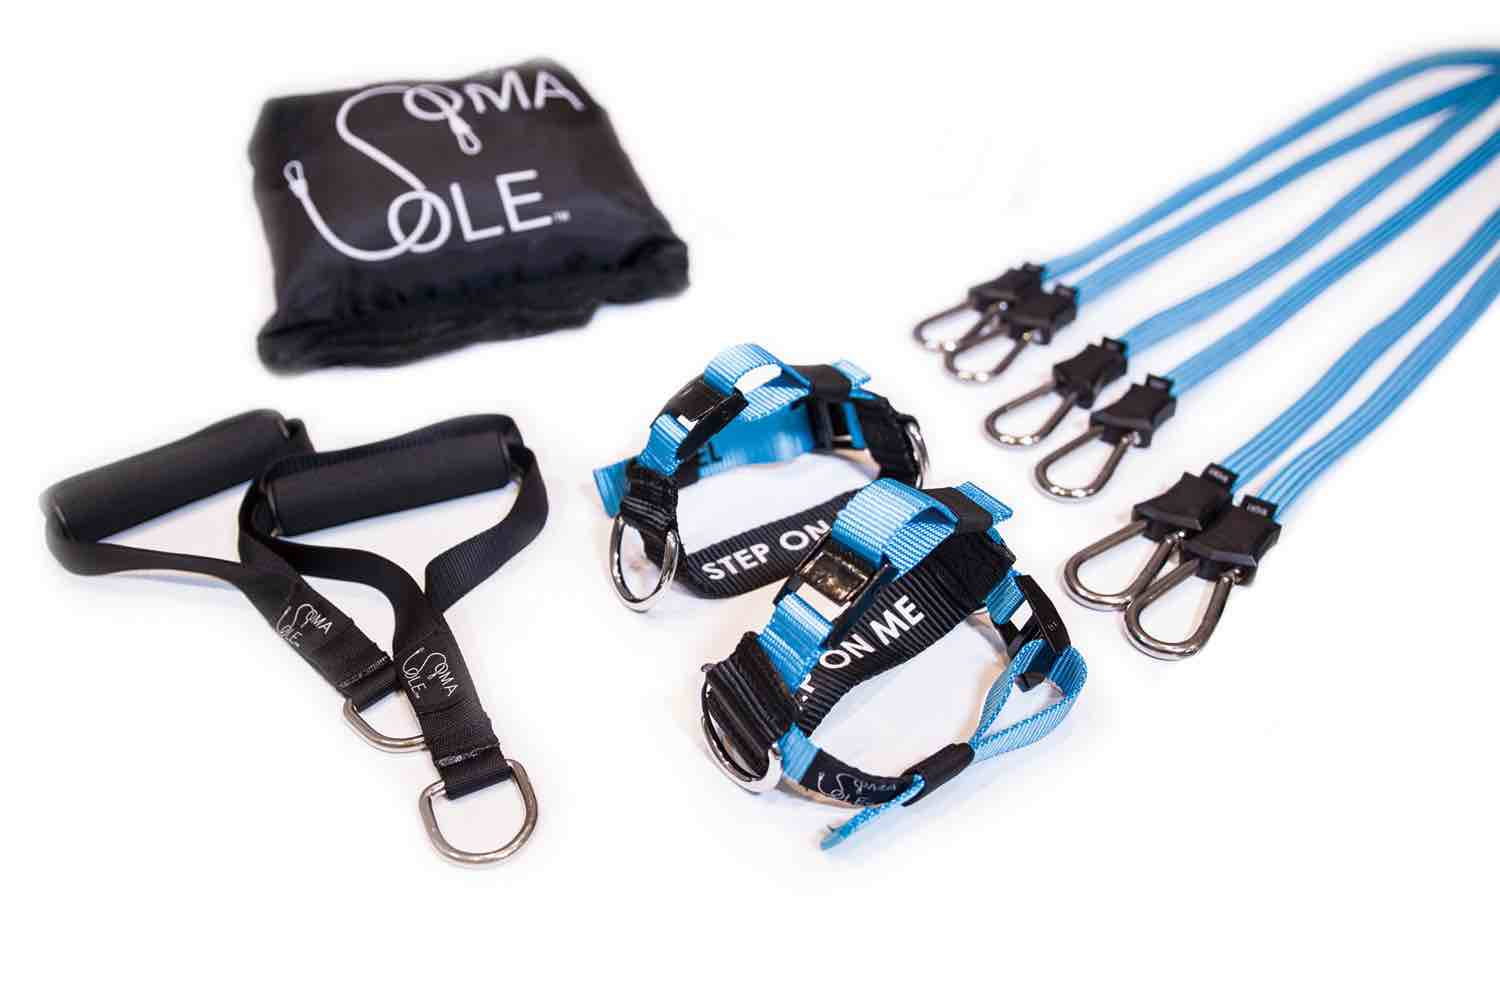 Win this Finesse Fitness SamoSole bundle. #giveaway